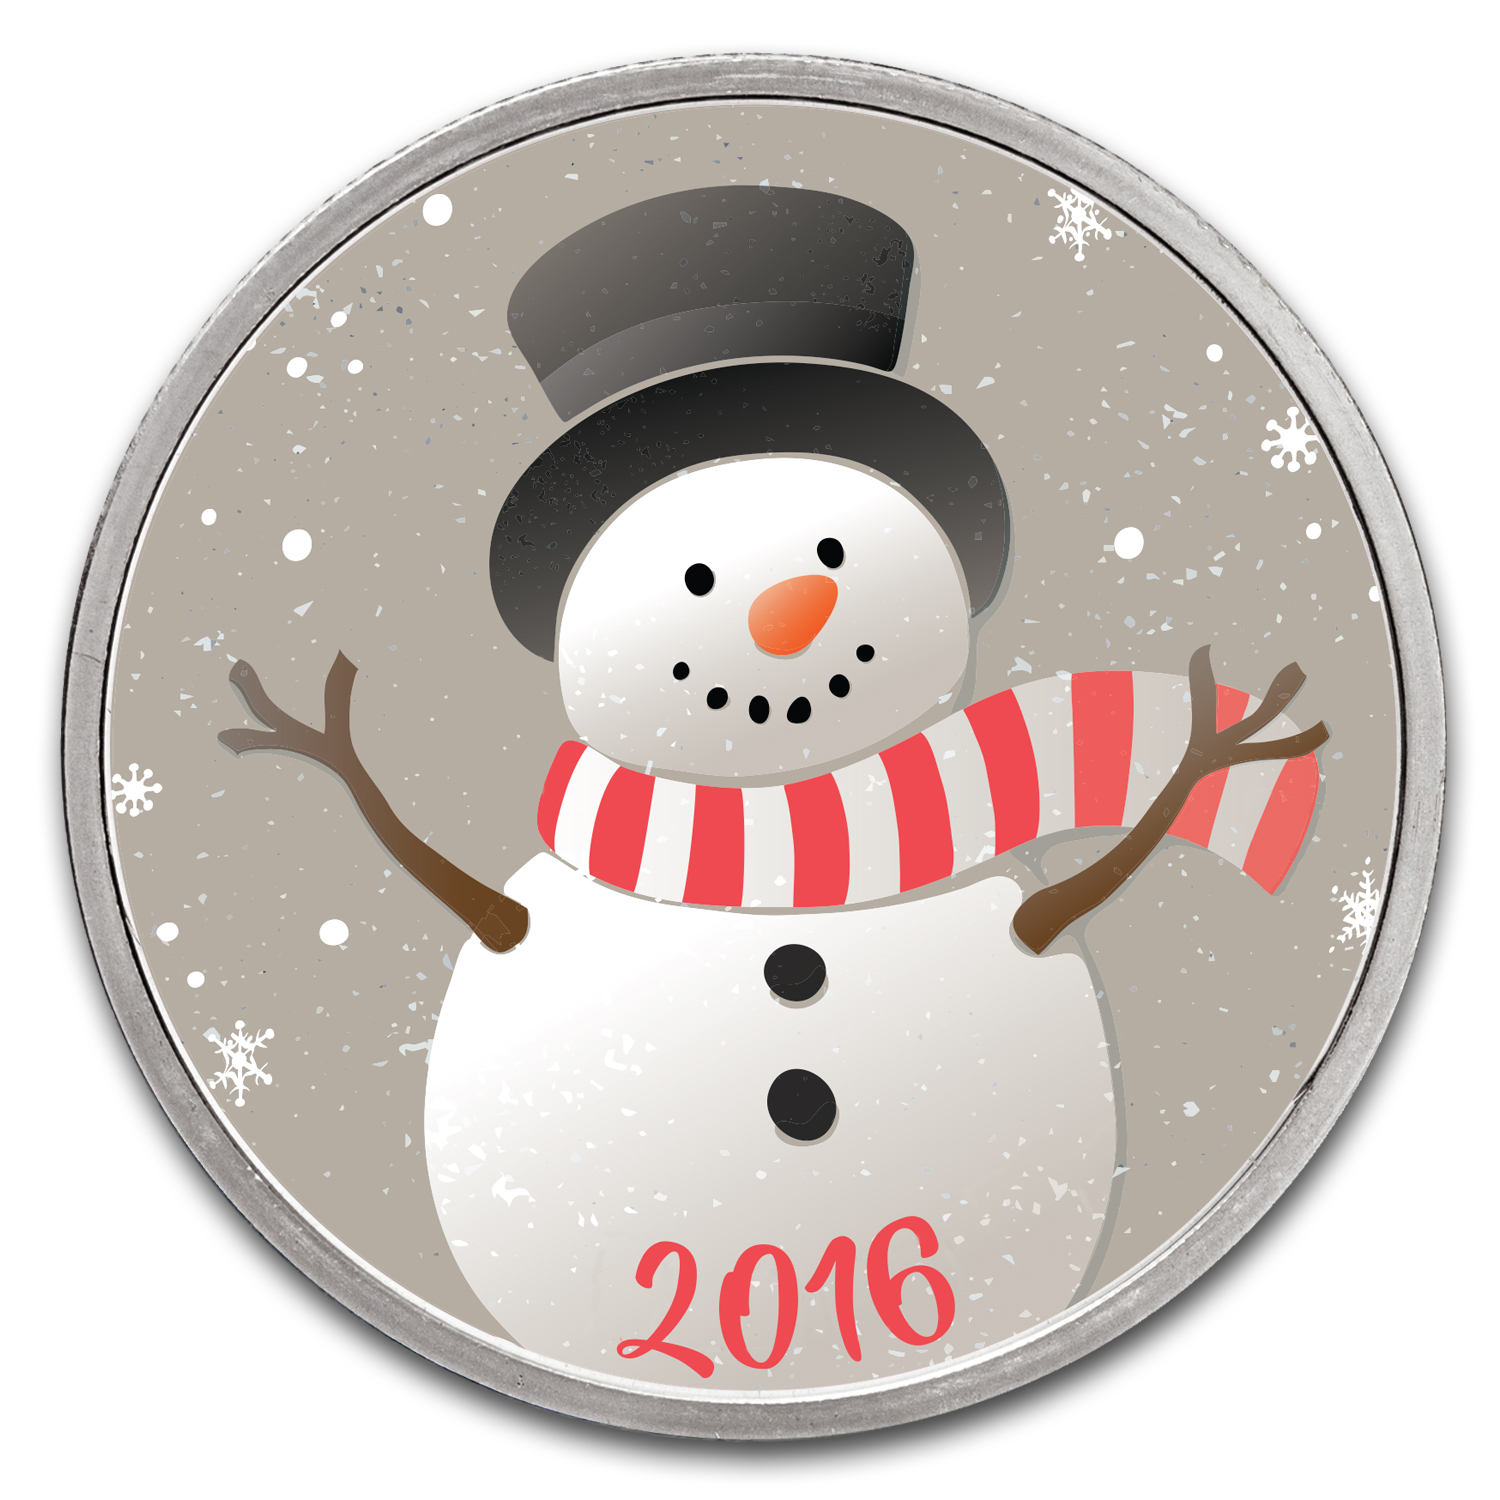 1 oz Silver Colorized Round - APMEX (Smiling Snowman)